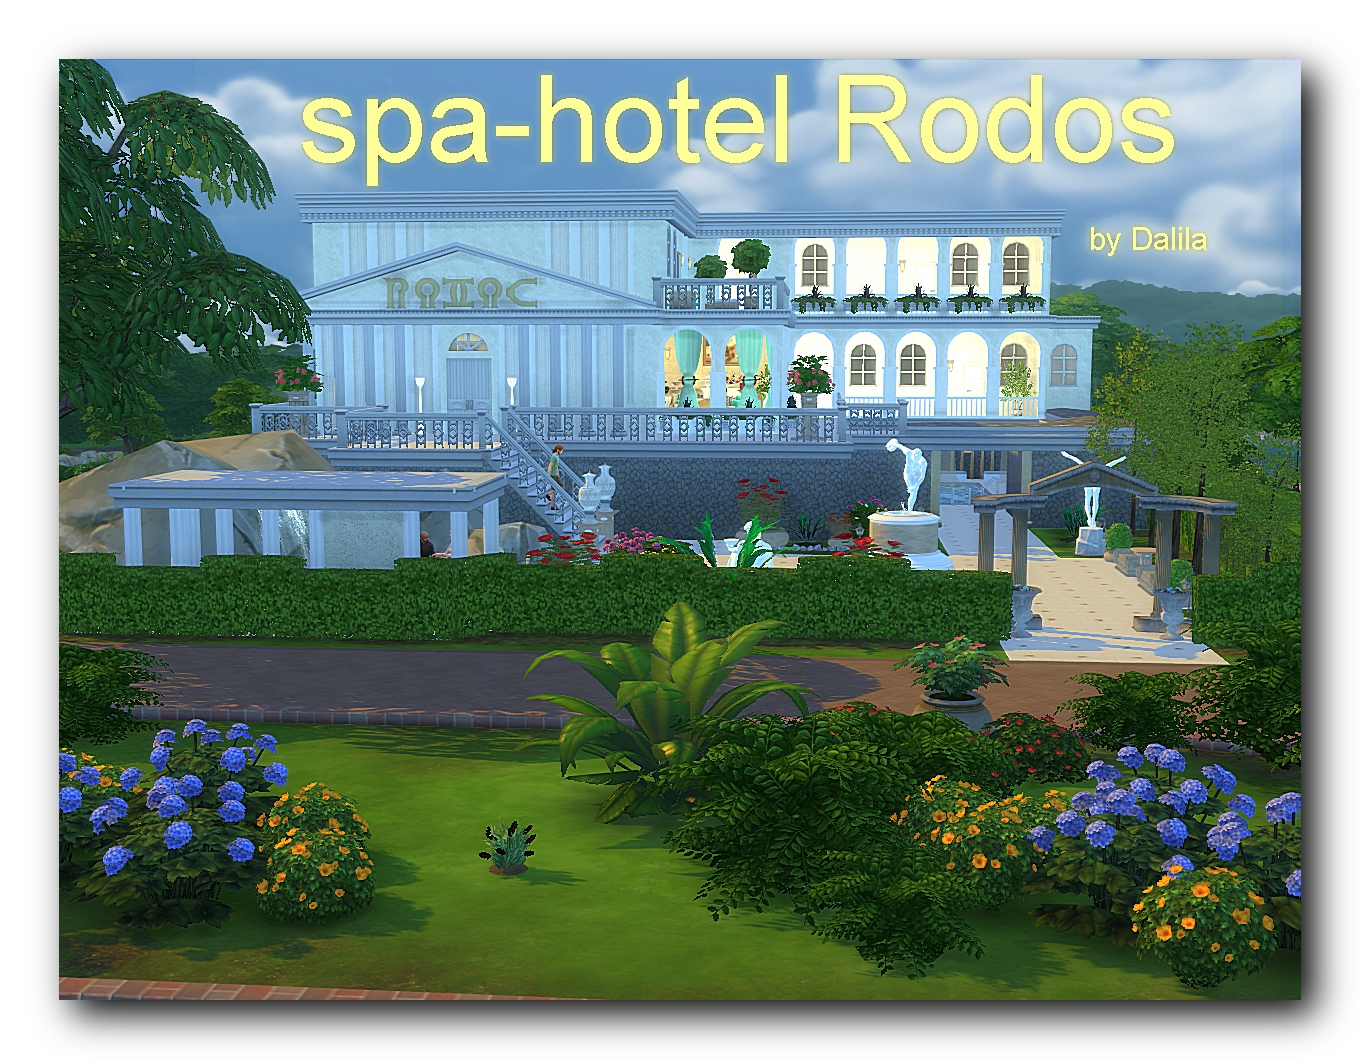 Spa-hotel Rodos by Dalila